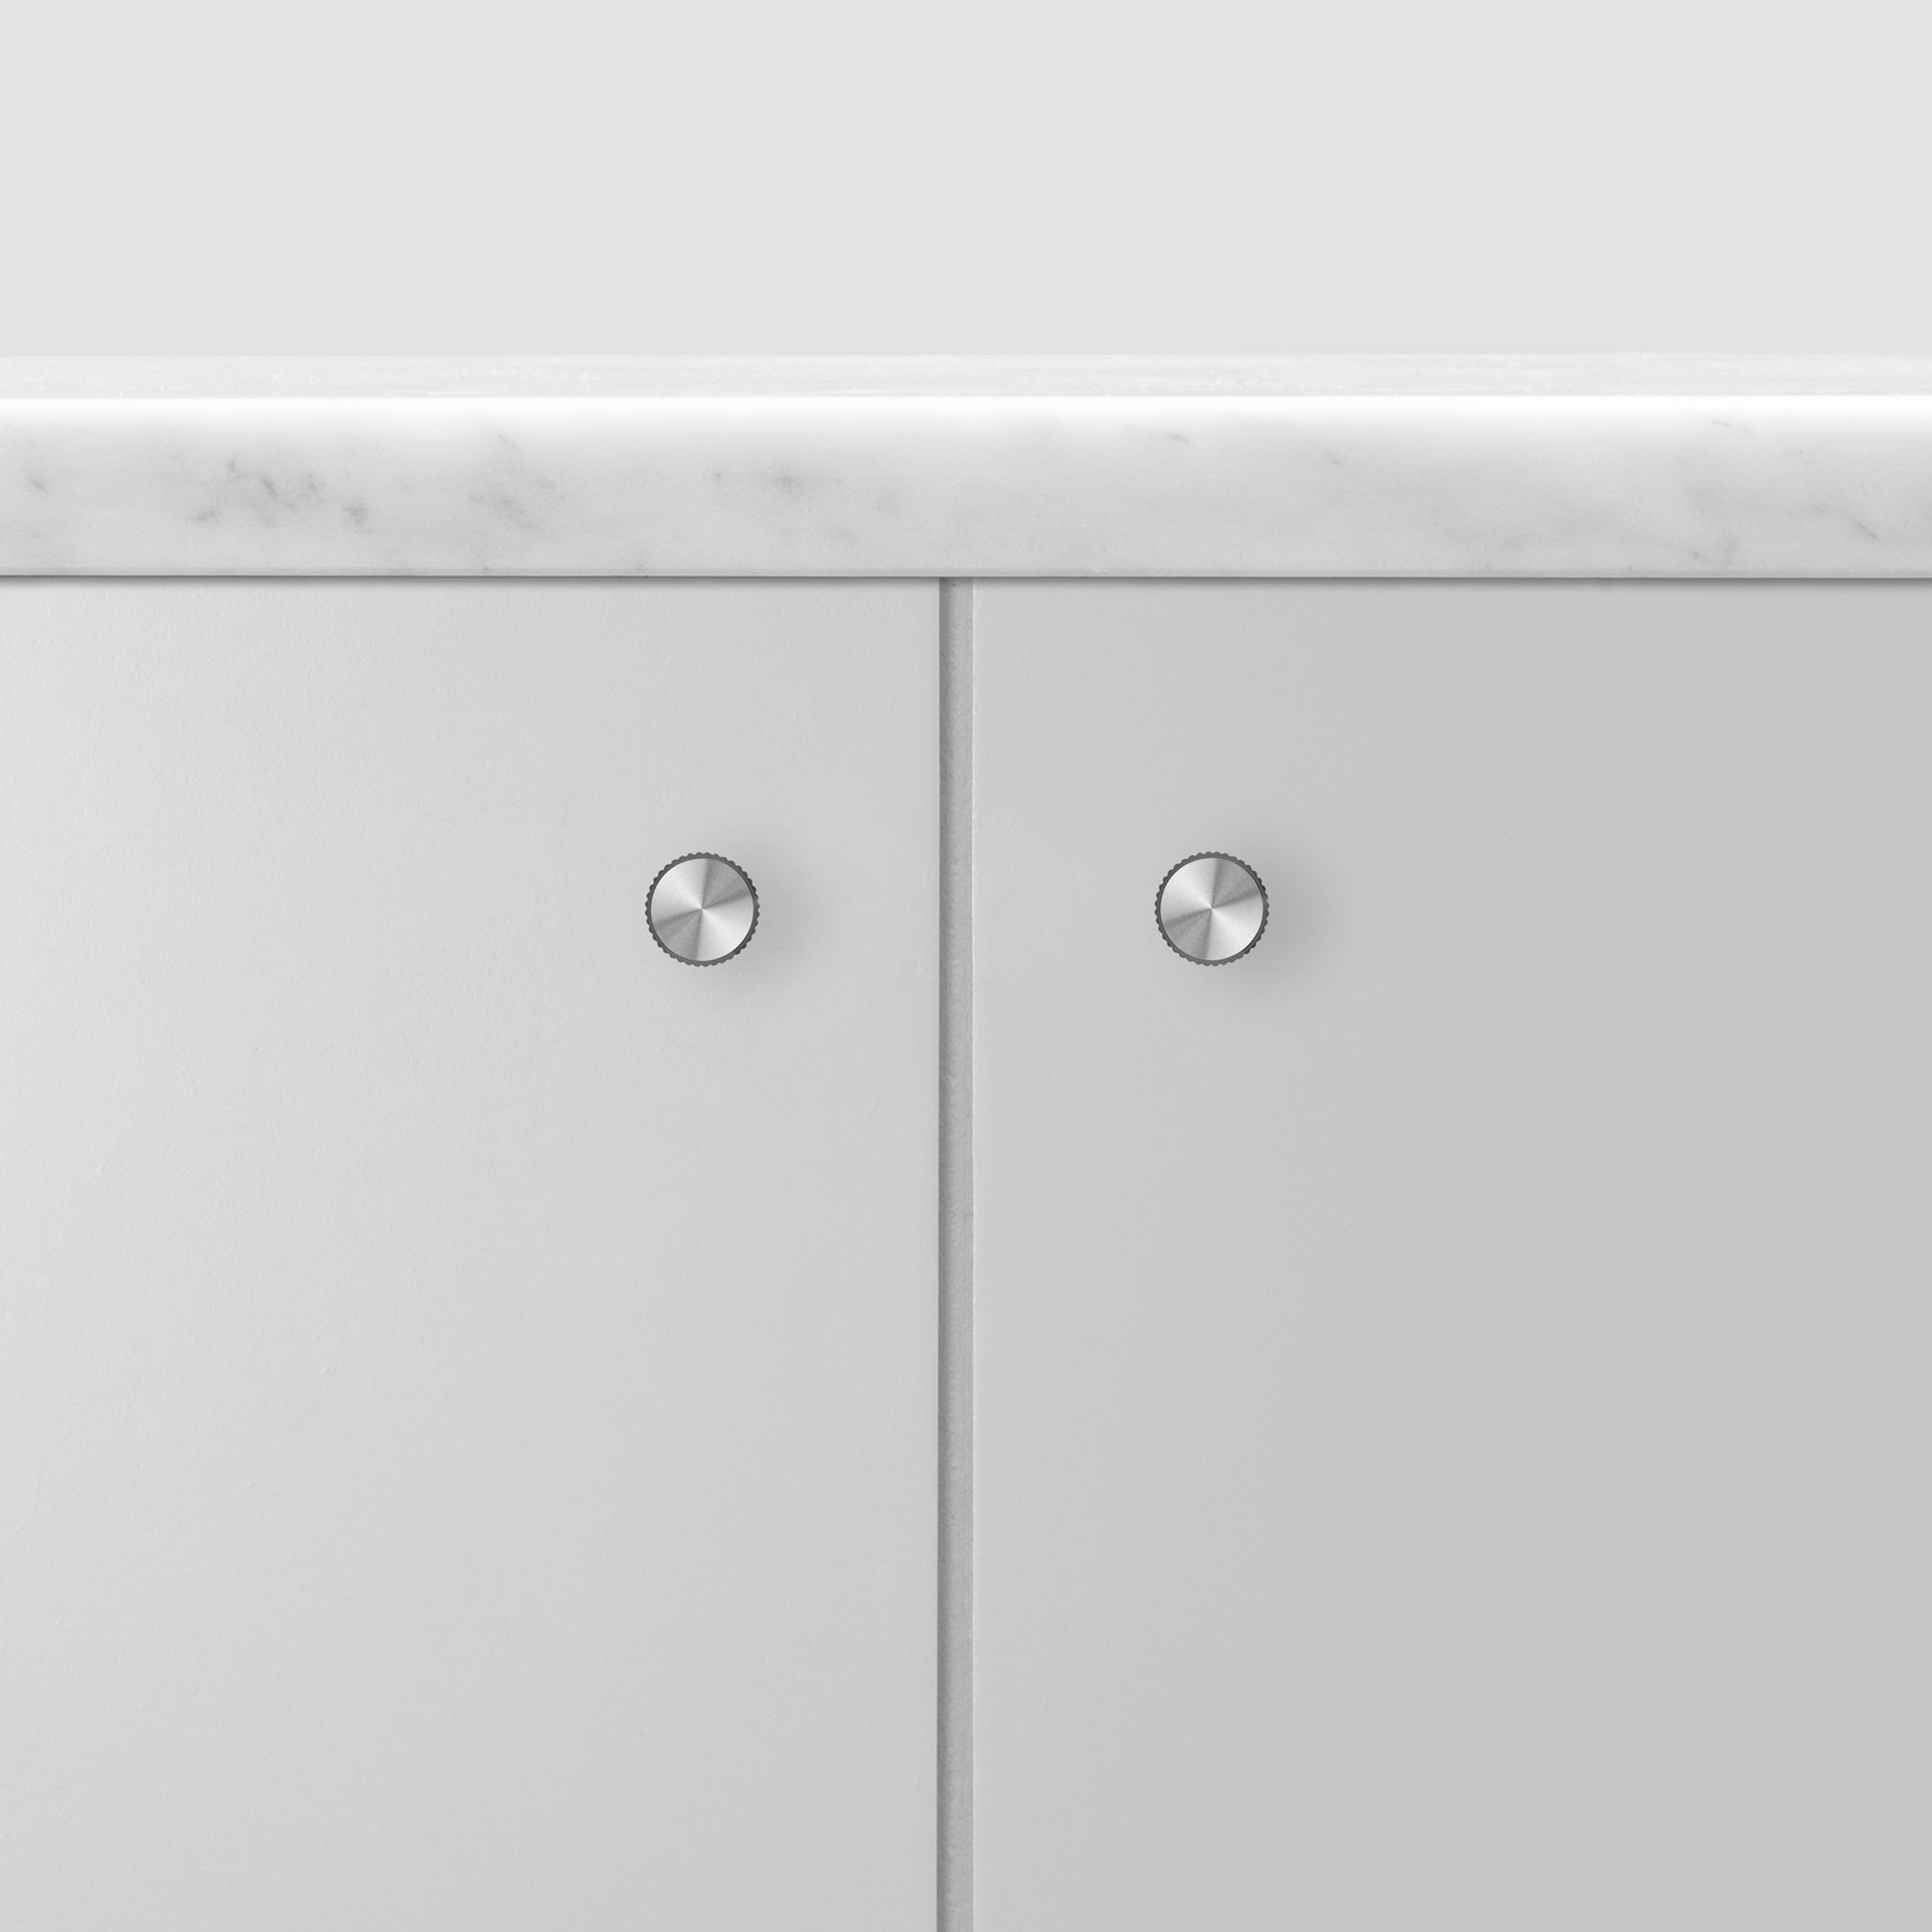 2.Buster+Punch_Furniture_Knob_Steel